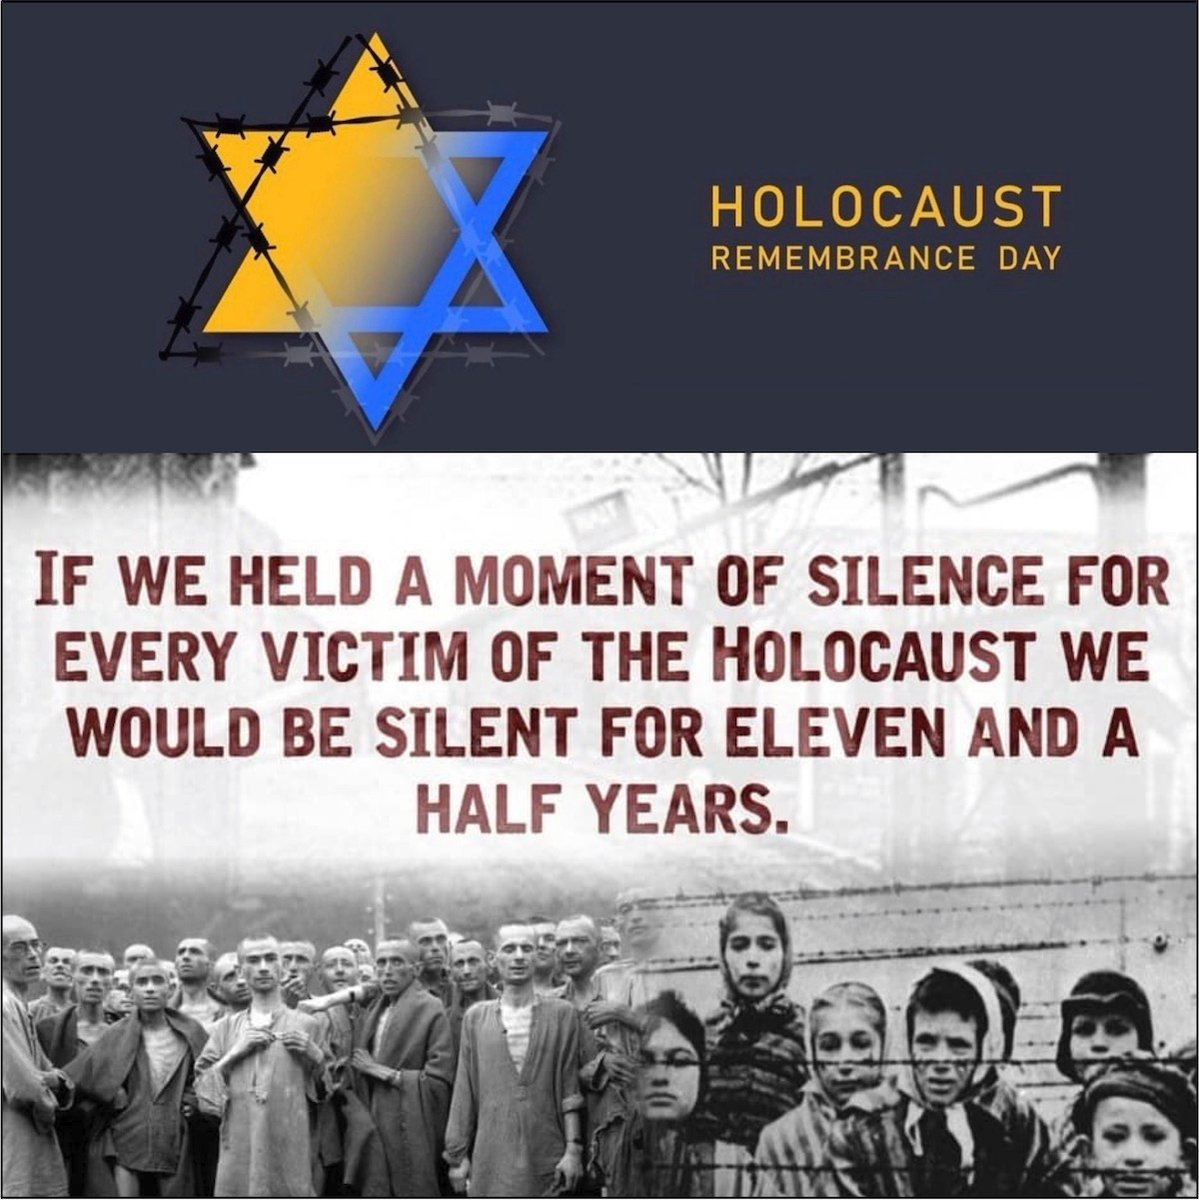 Today is a day to #neverforget and to never allow to happen again. #HolocaustRemembranceDay